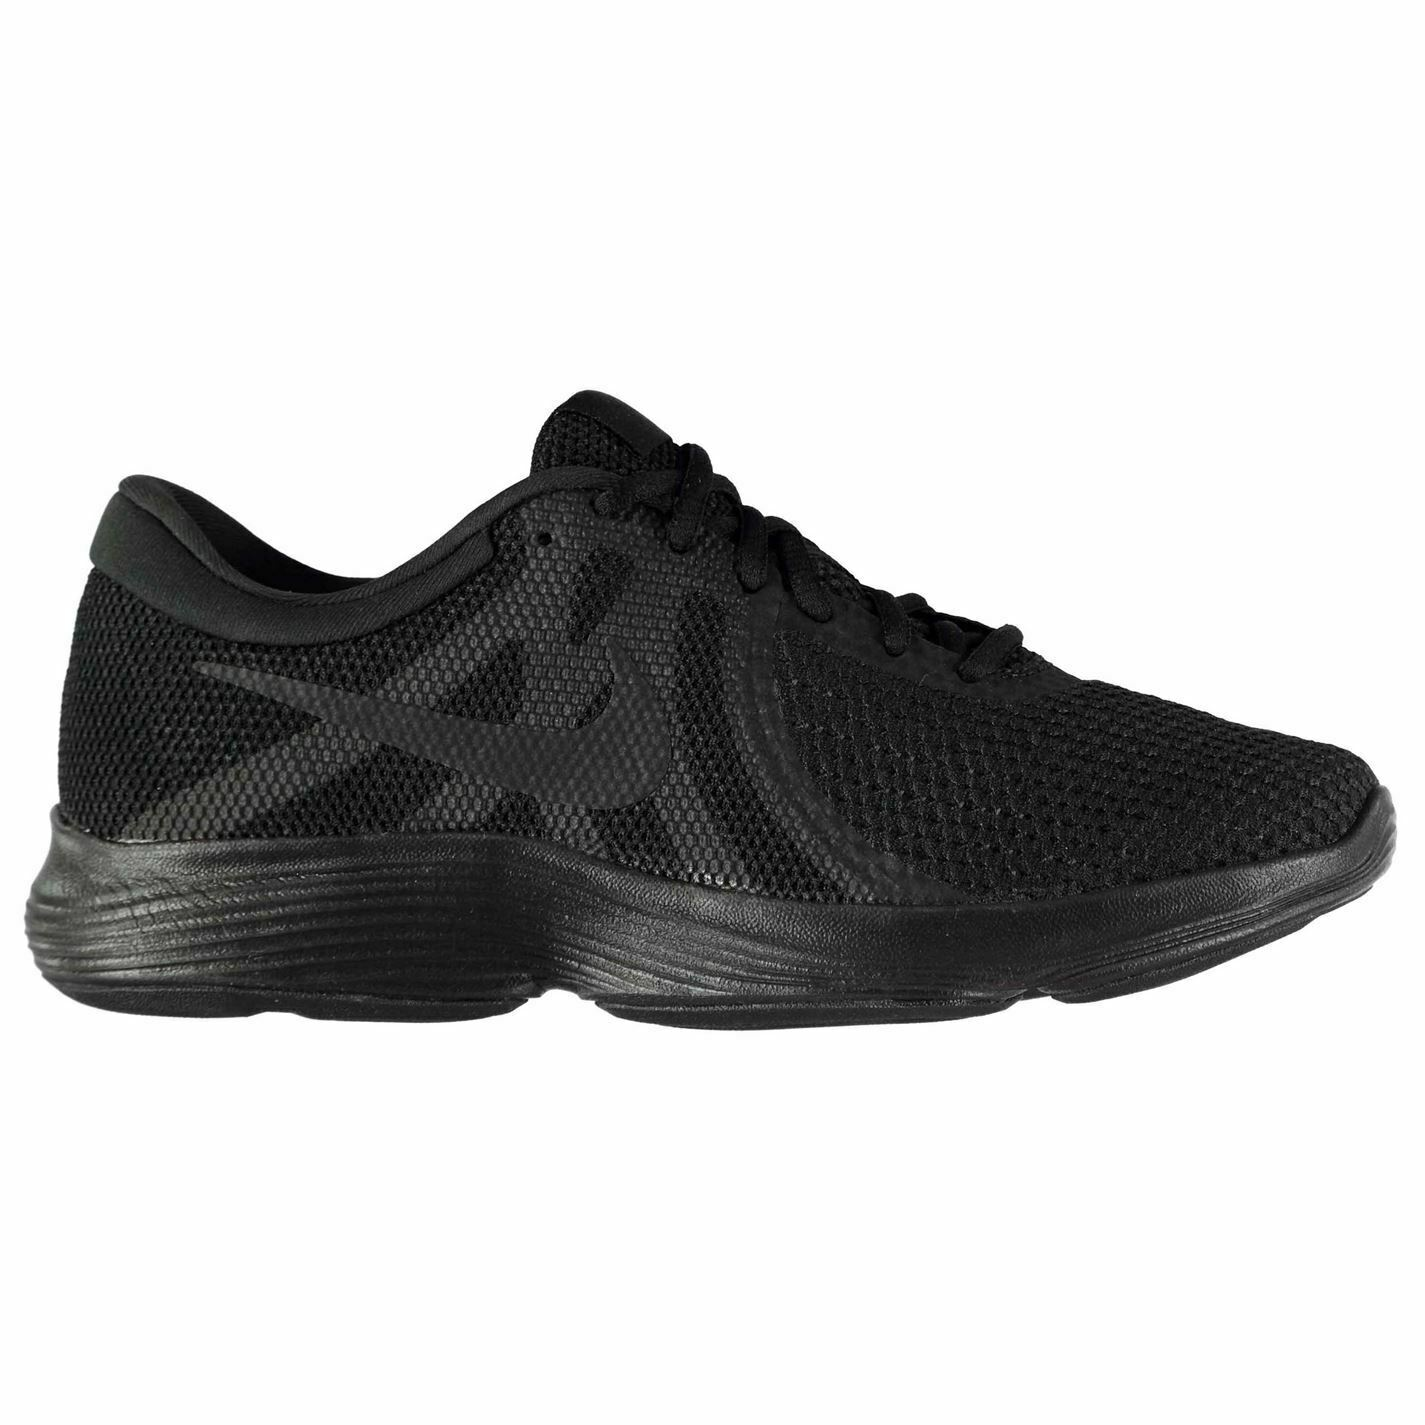 Nike Revolution 4 Trainers Mens Black Athletic Sneakers shoes